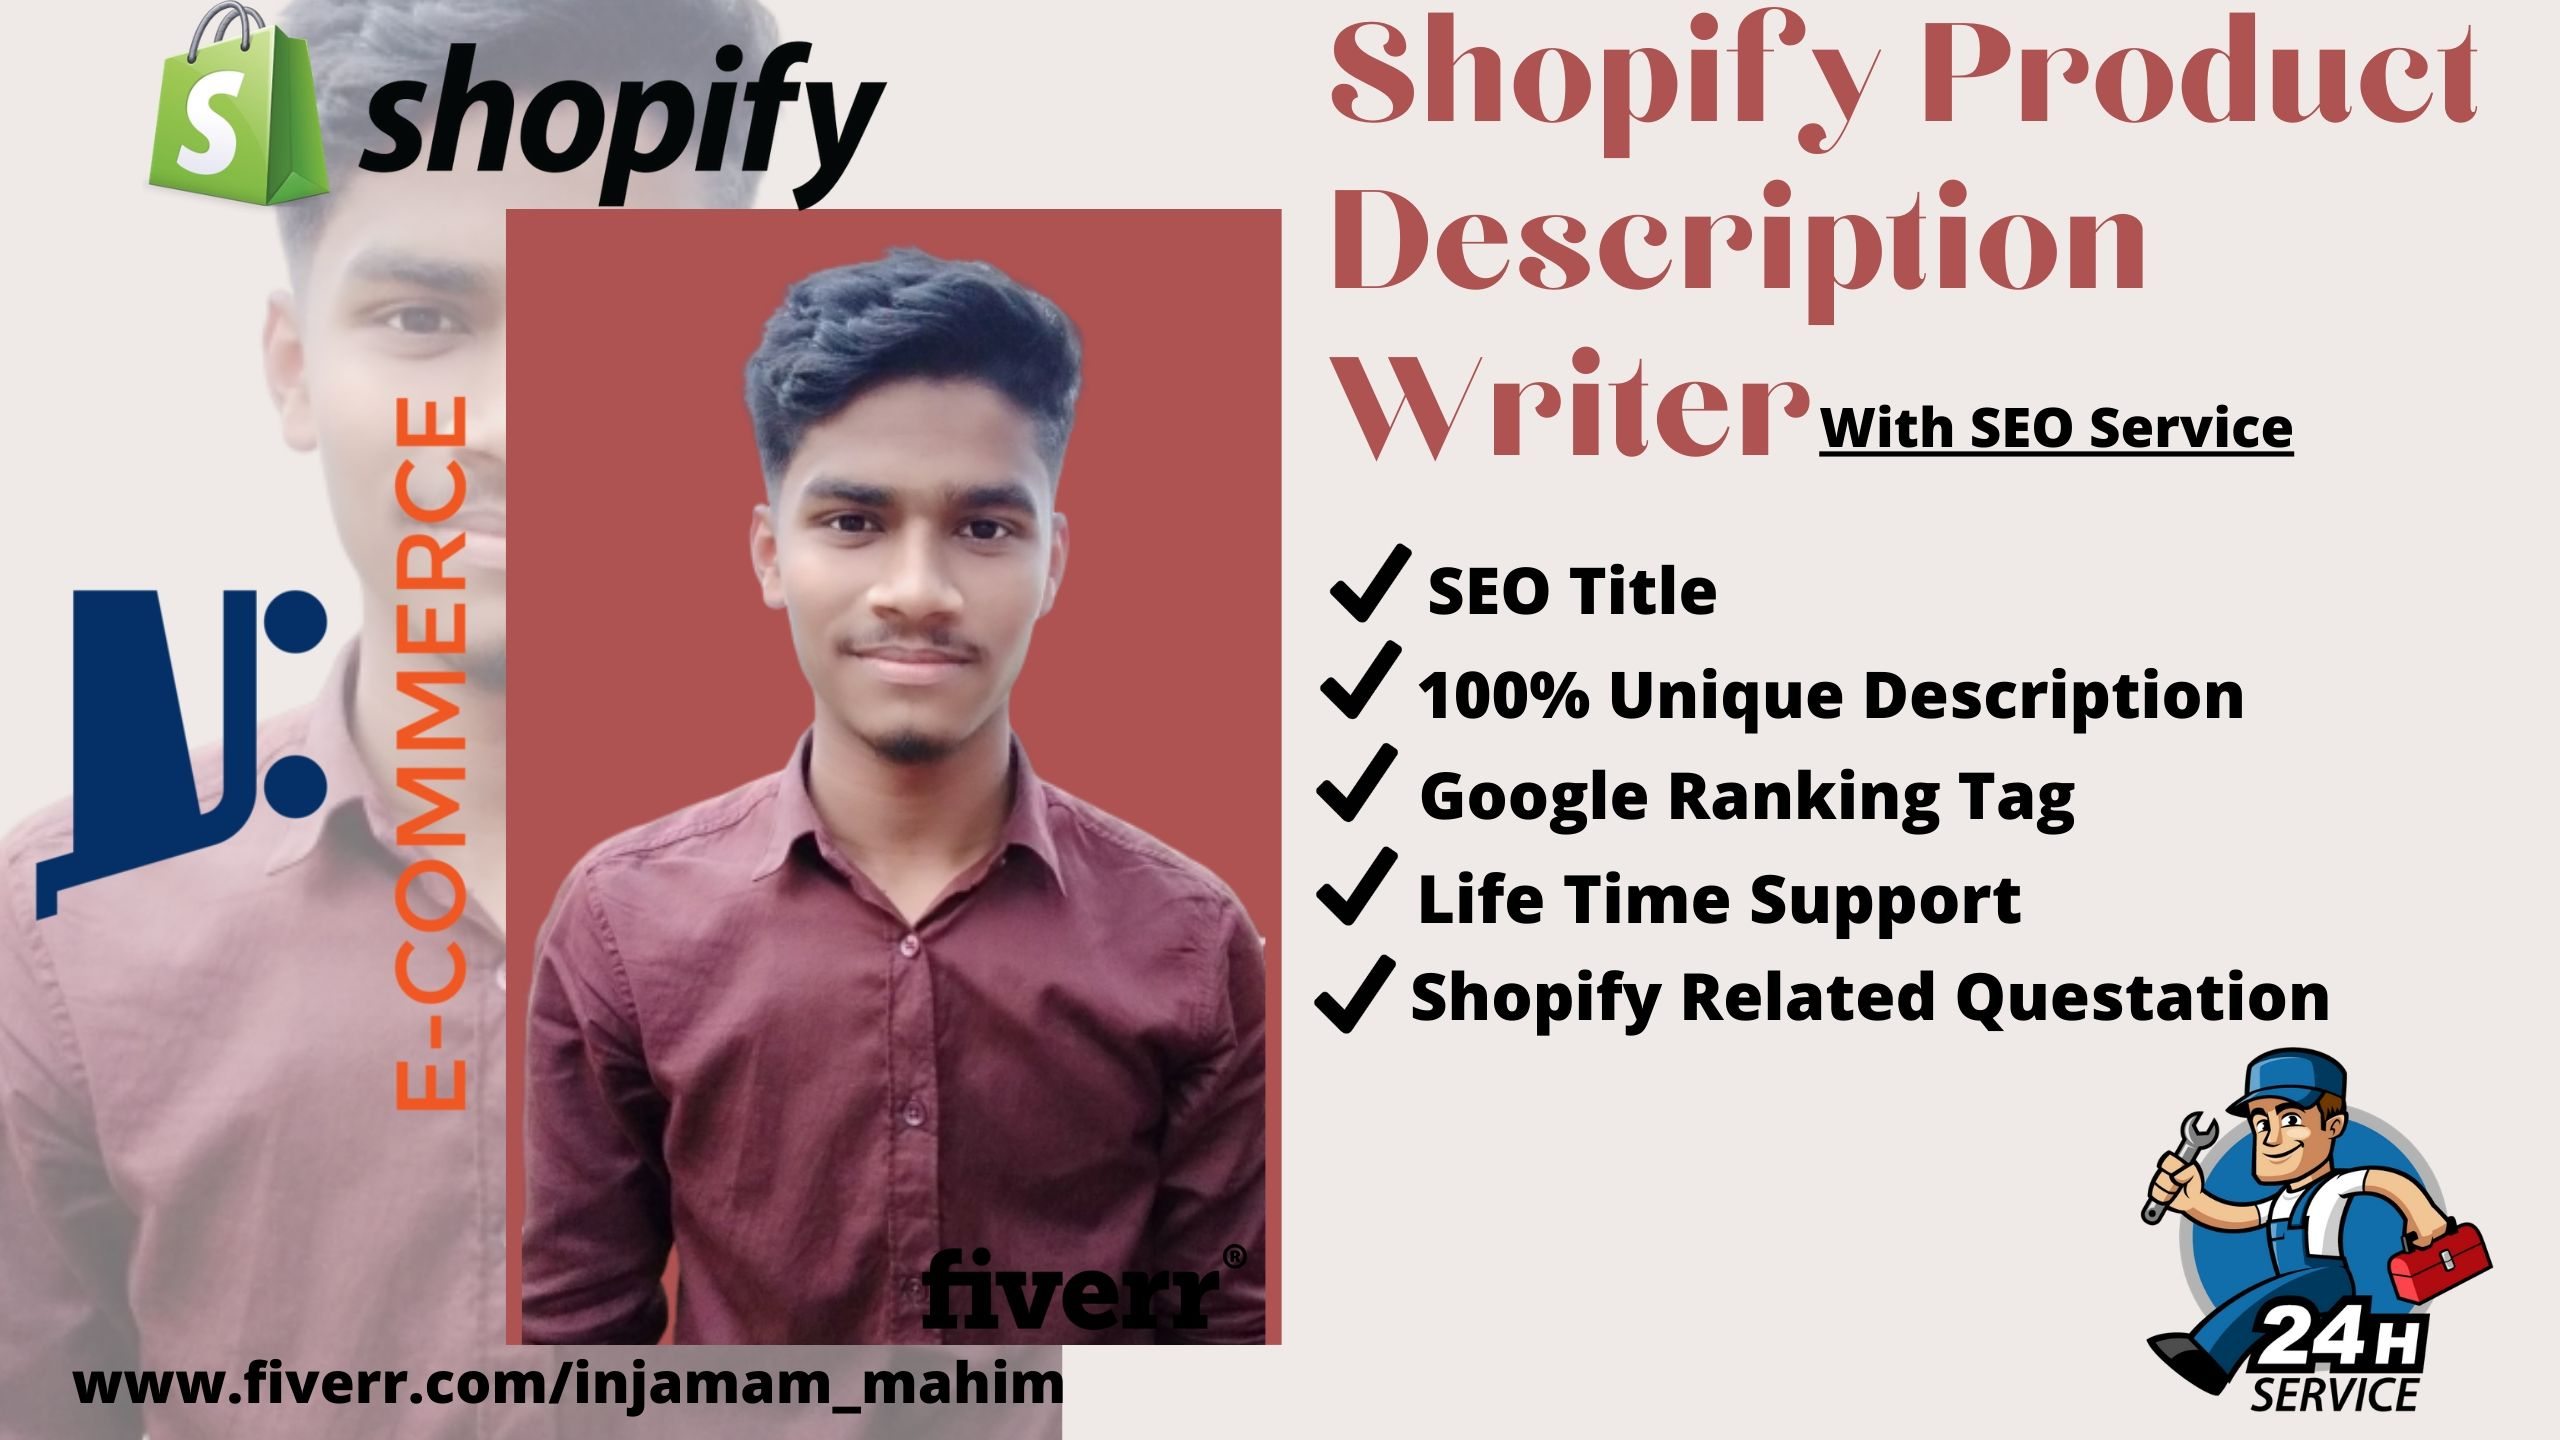 I will write shopify SEO product description for shopify dropshipping 10 product